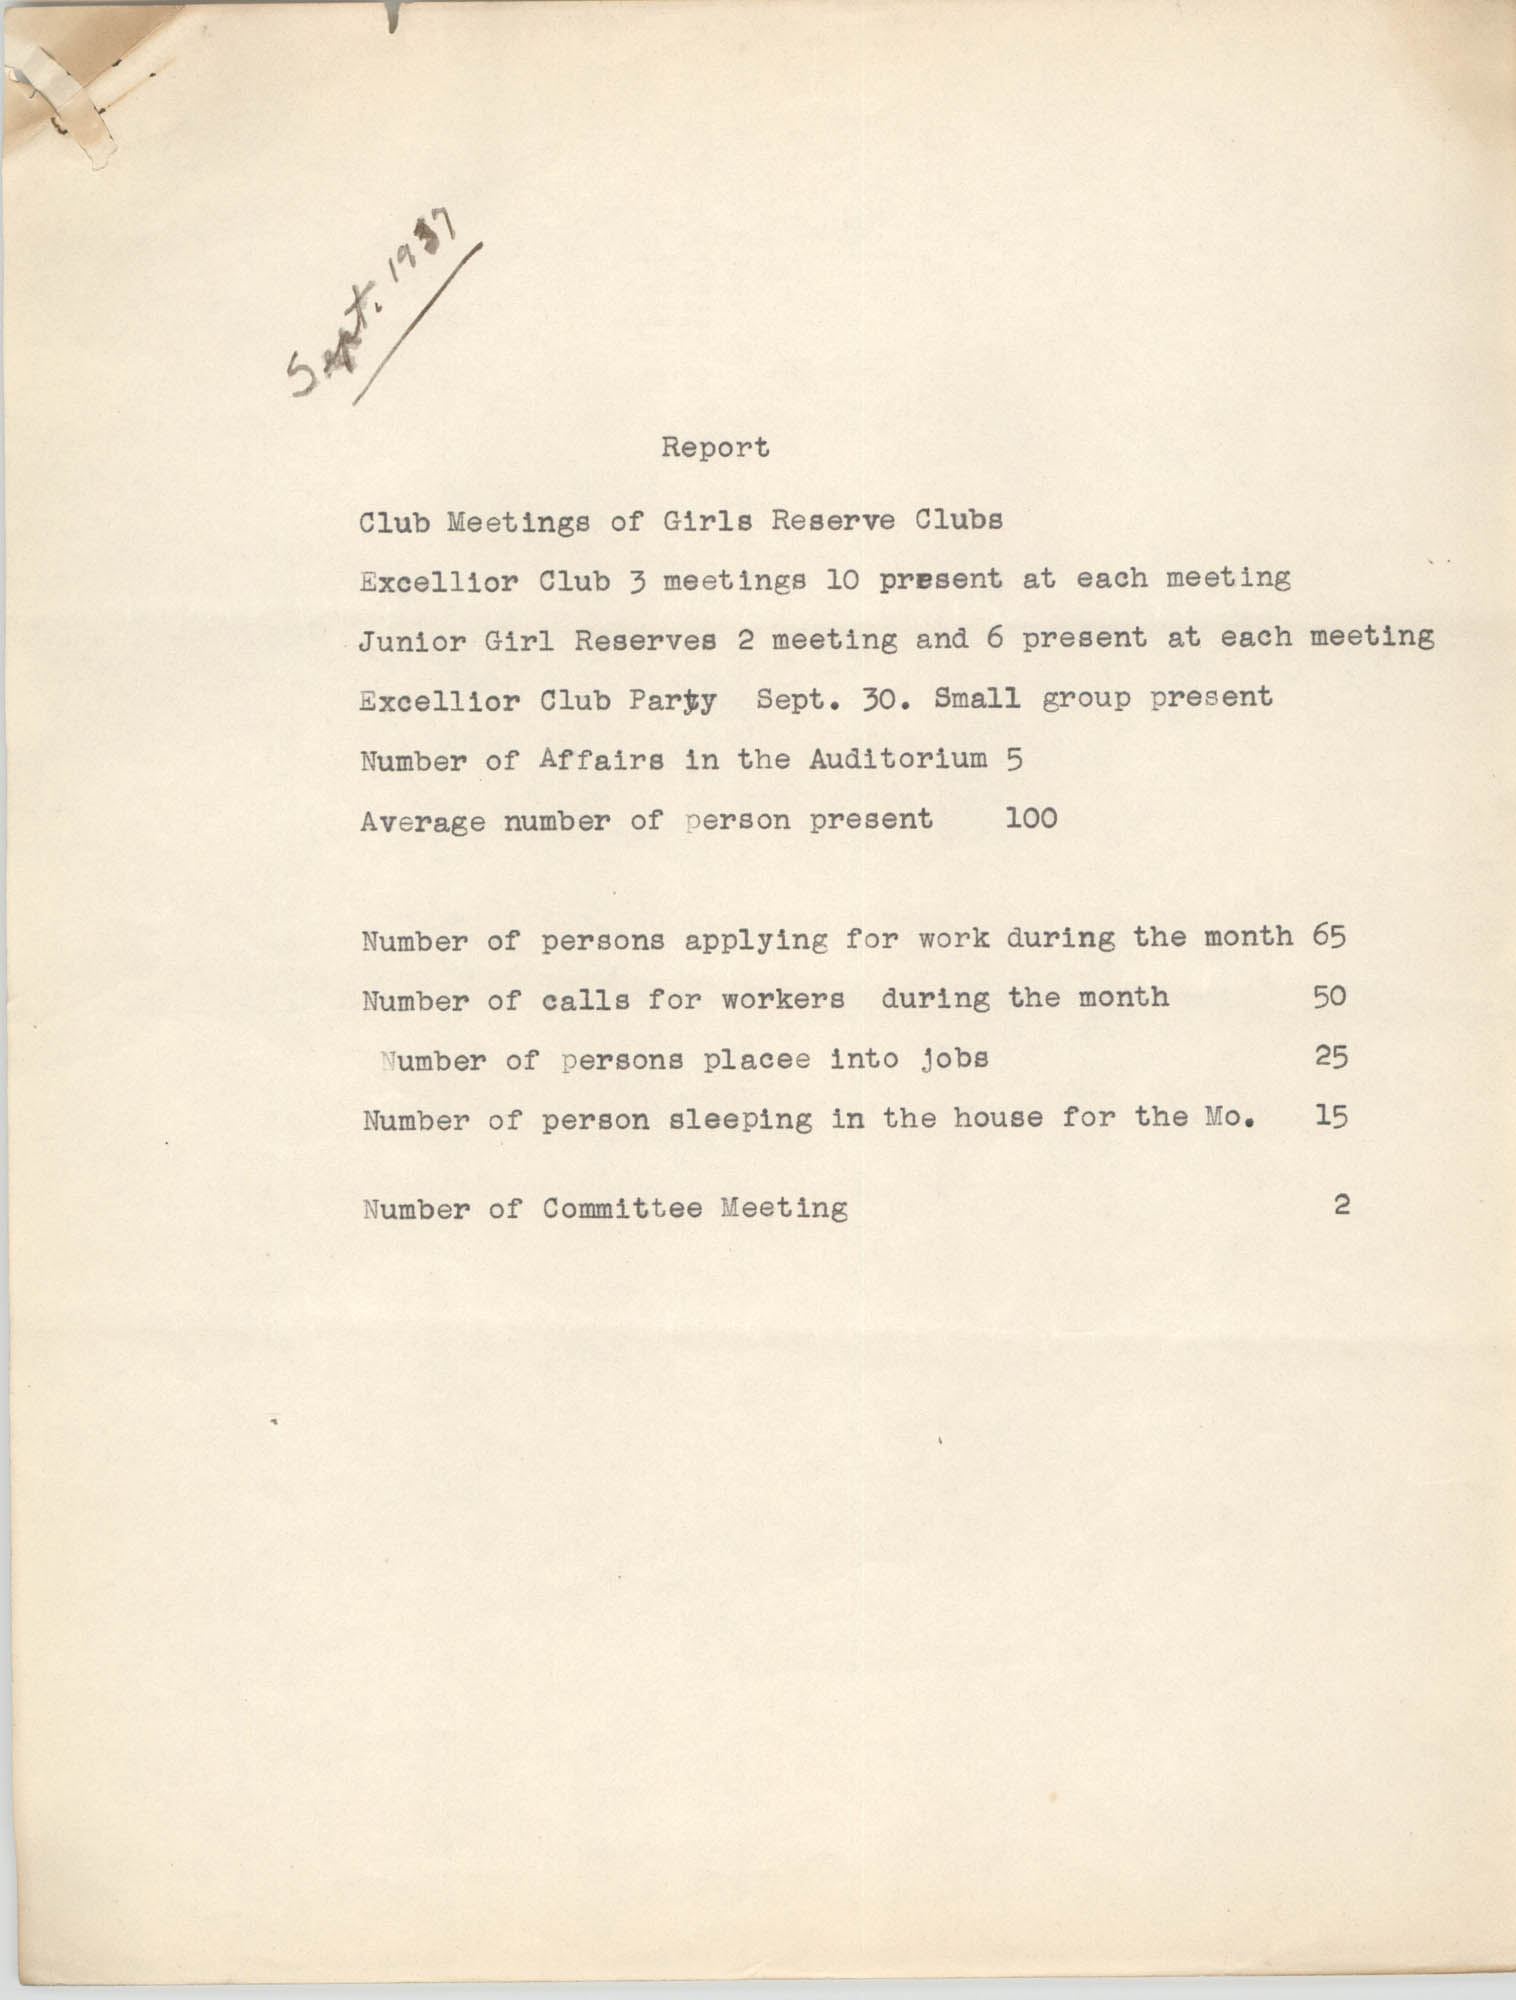 Monthly Report for the Coming Street Y.W.C.A., September 1937